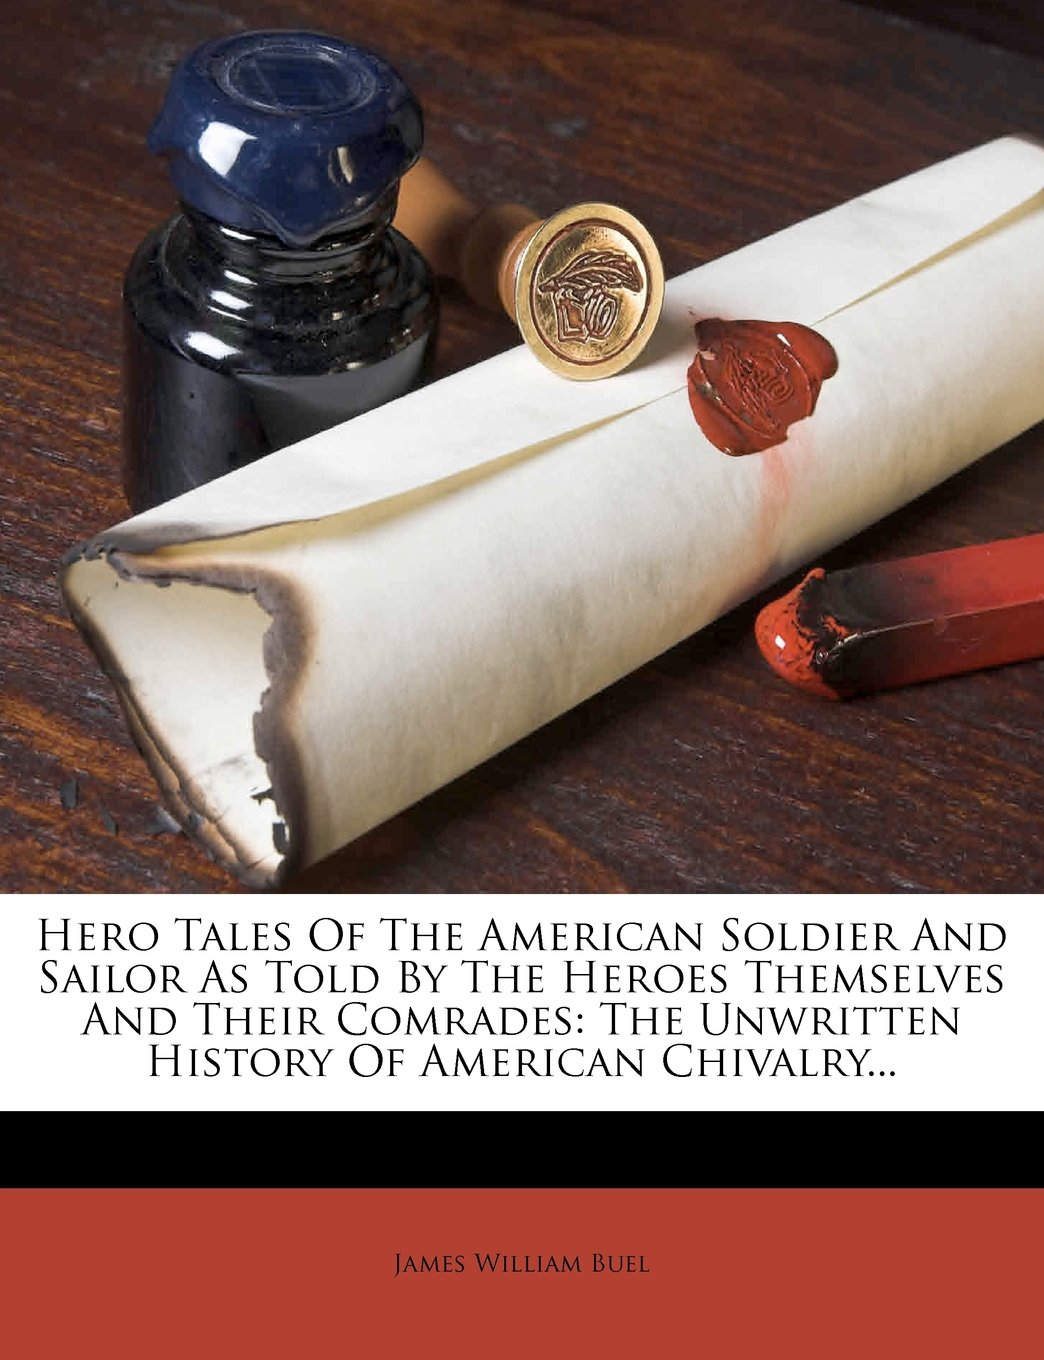 Read Online Hero Tales of the American Soldier and Sailor as Told by the Heroes Themselves and Their Comrades: The Unwritten History of American Chivalry... ebook